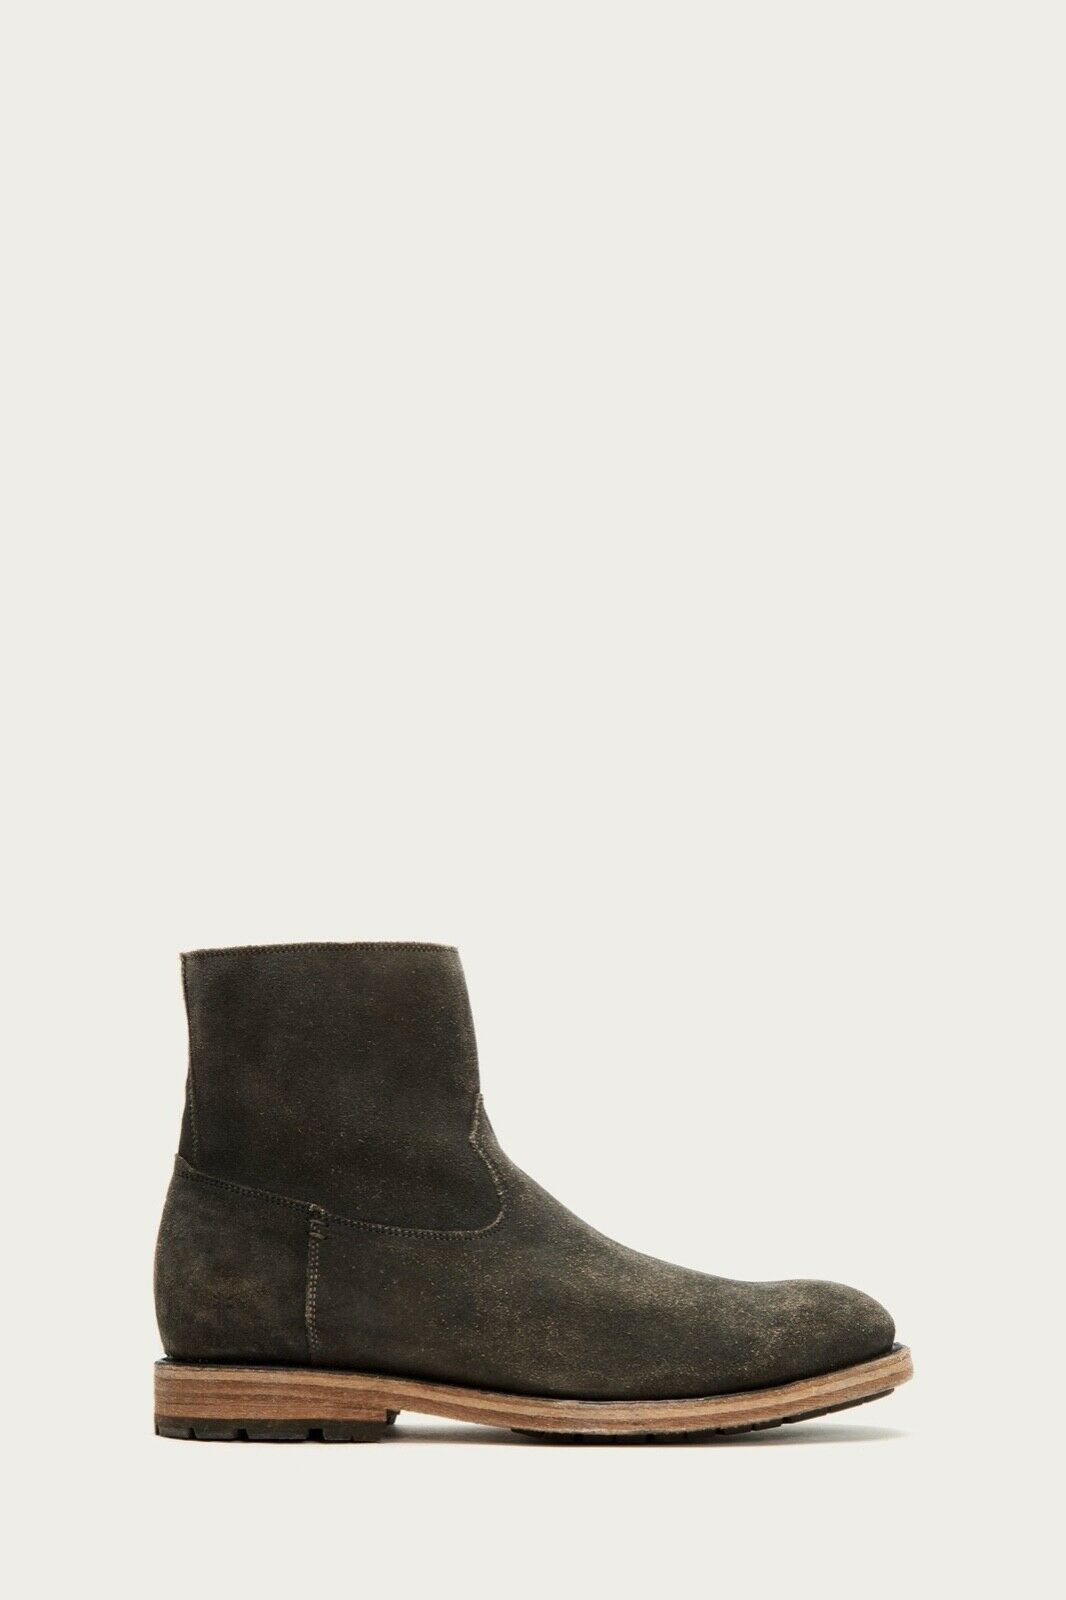 NEW Size 9 Mens Frye Bowery Inside Zip Distressed Suede Faded Black Boots 80337